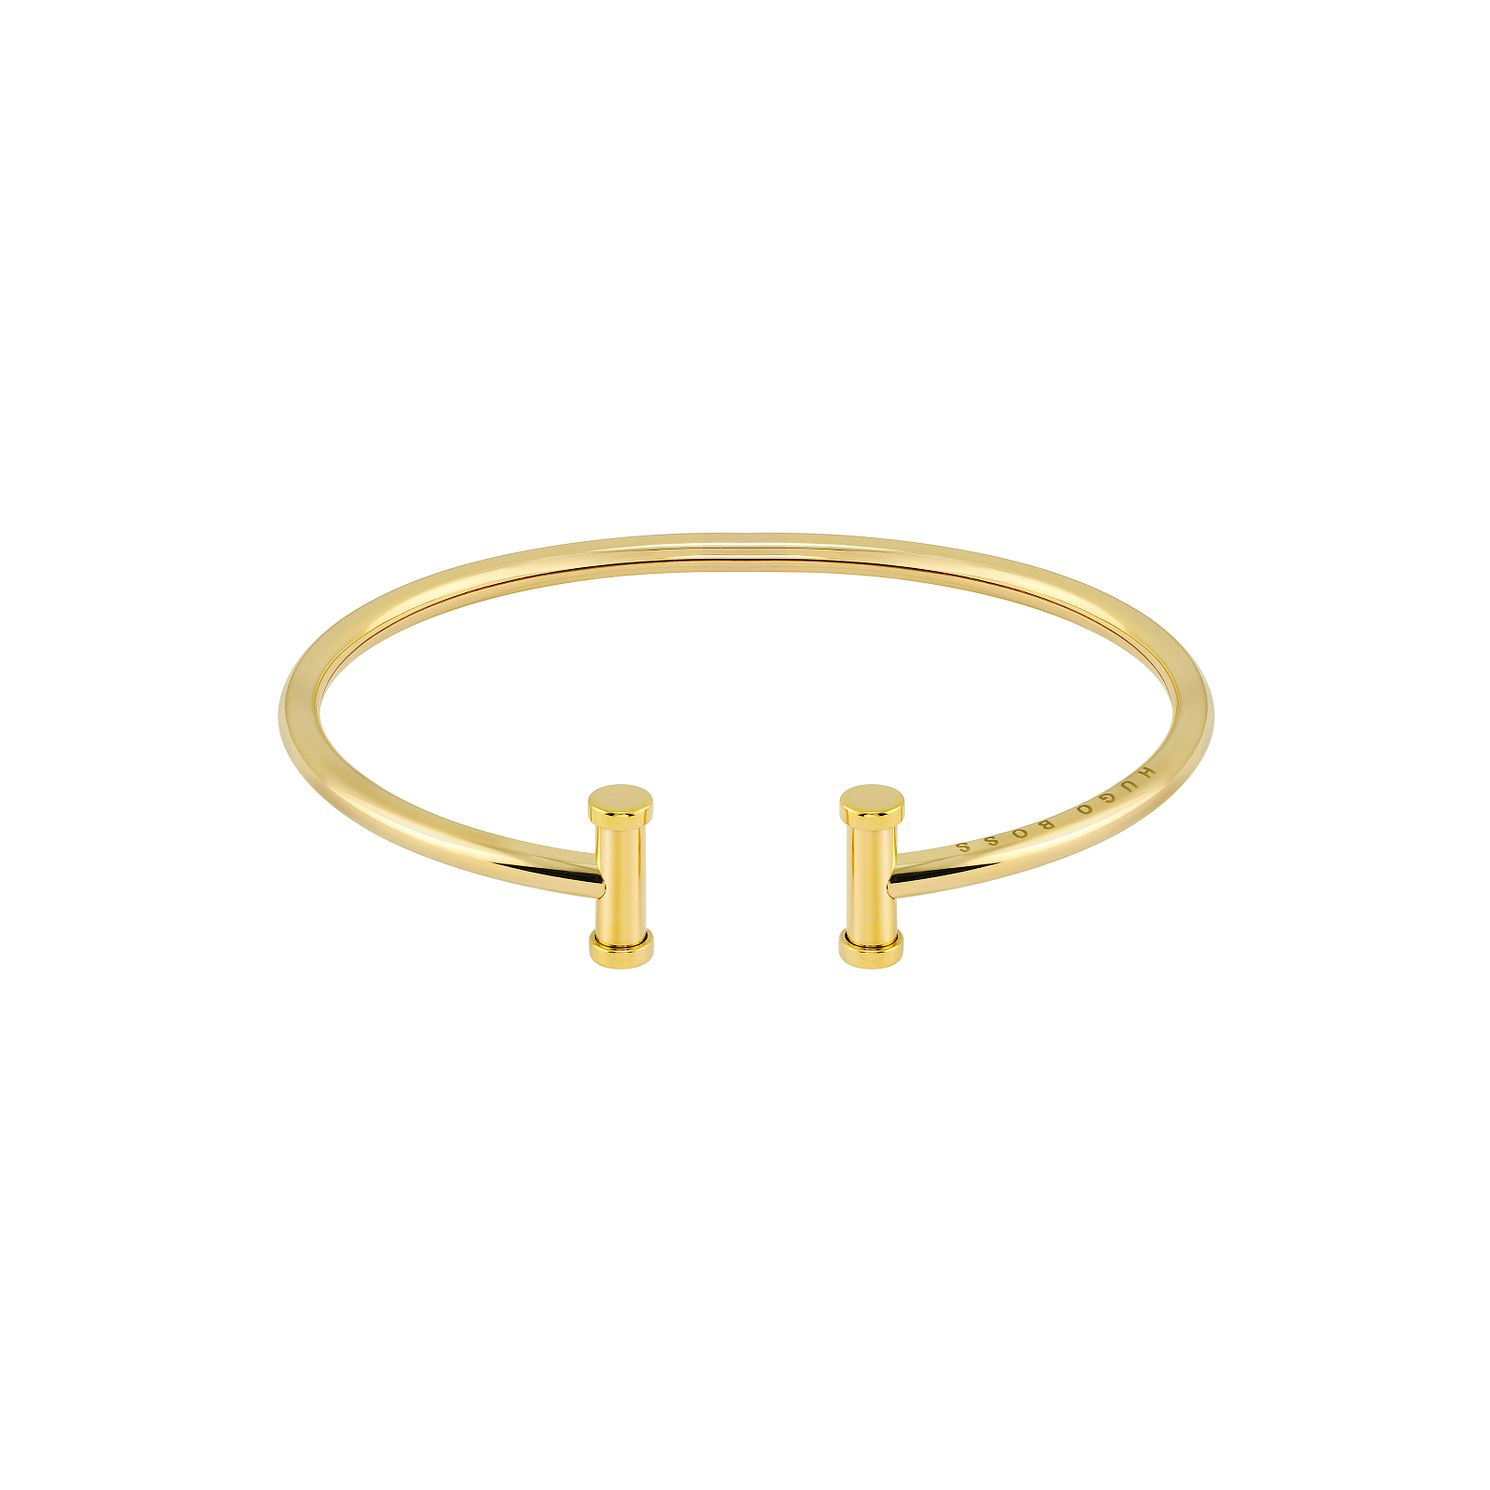 BOSS Ladies' Yellow Gold Tone Polished T-Bar Bangle - Product number 1201689